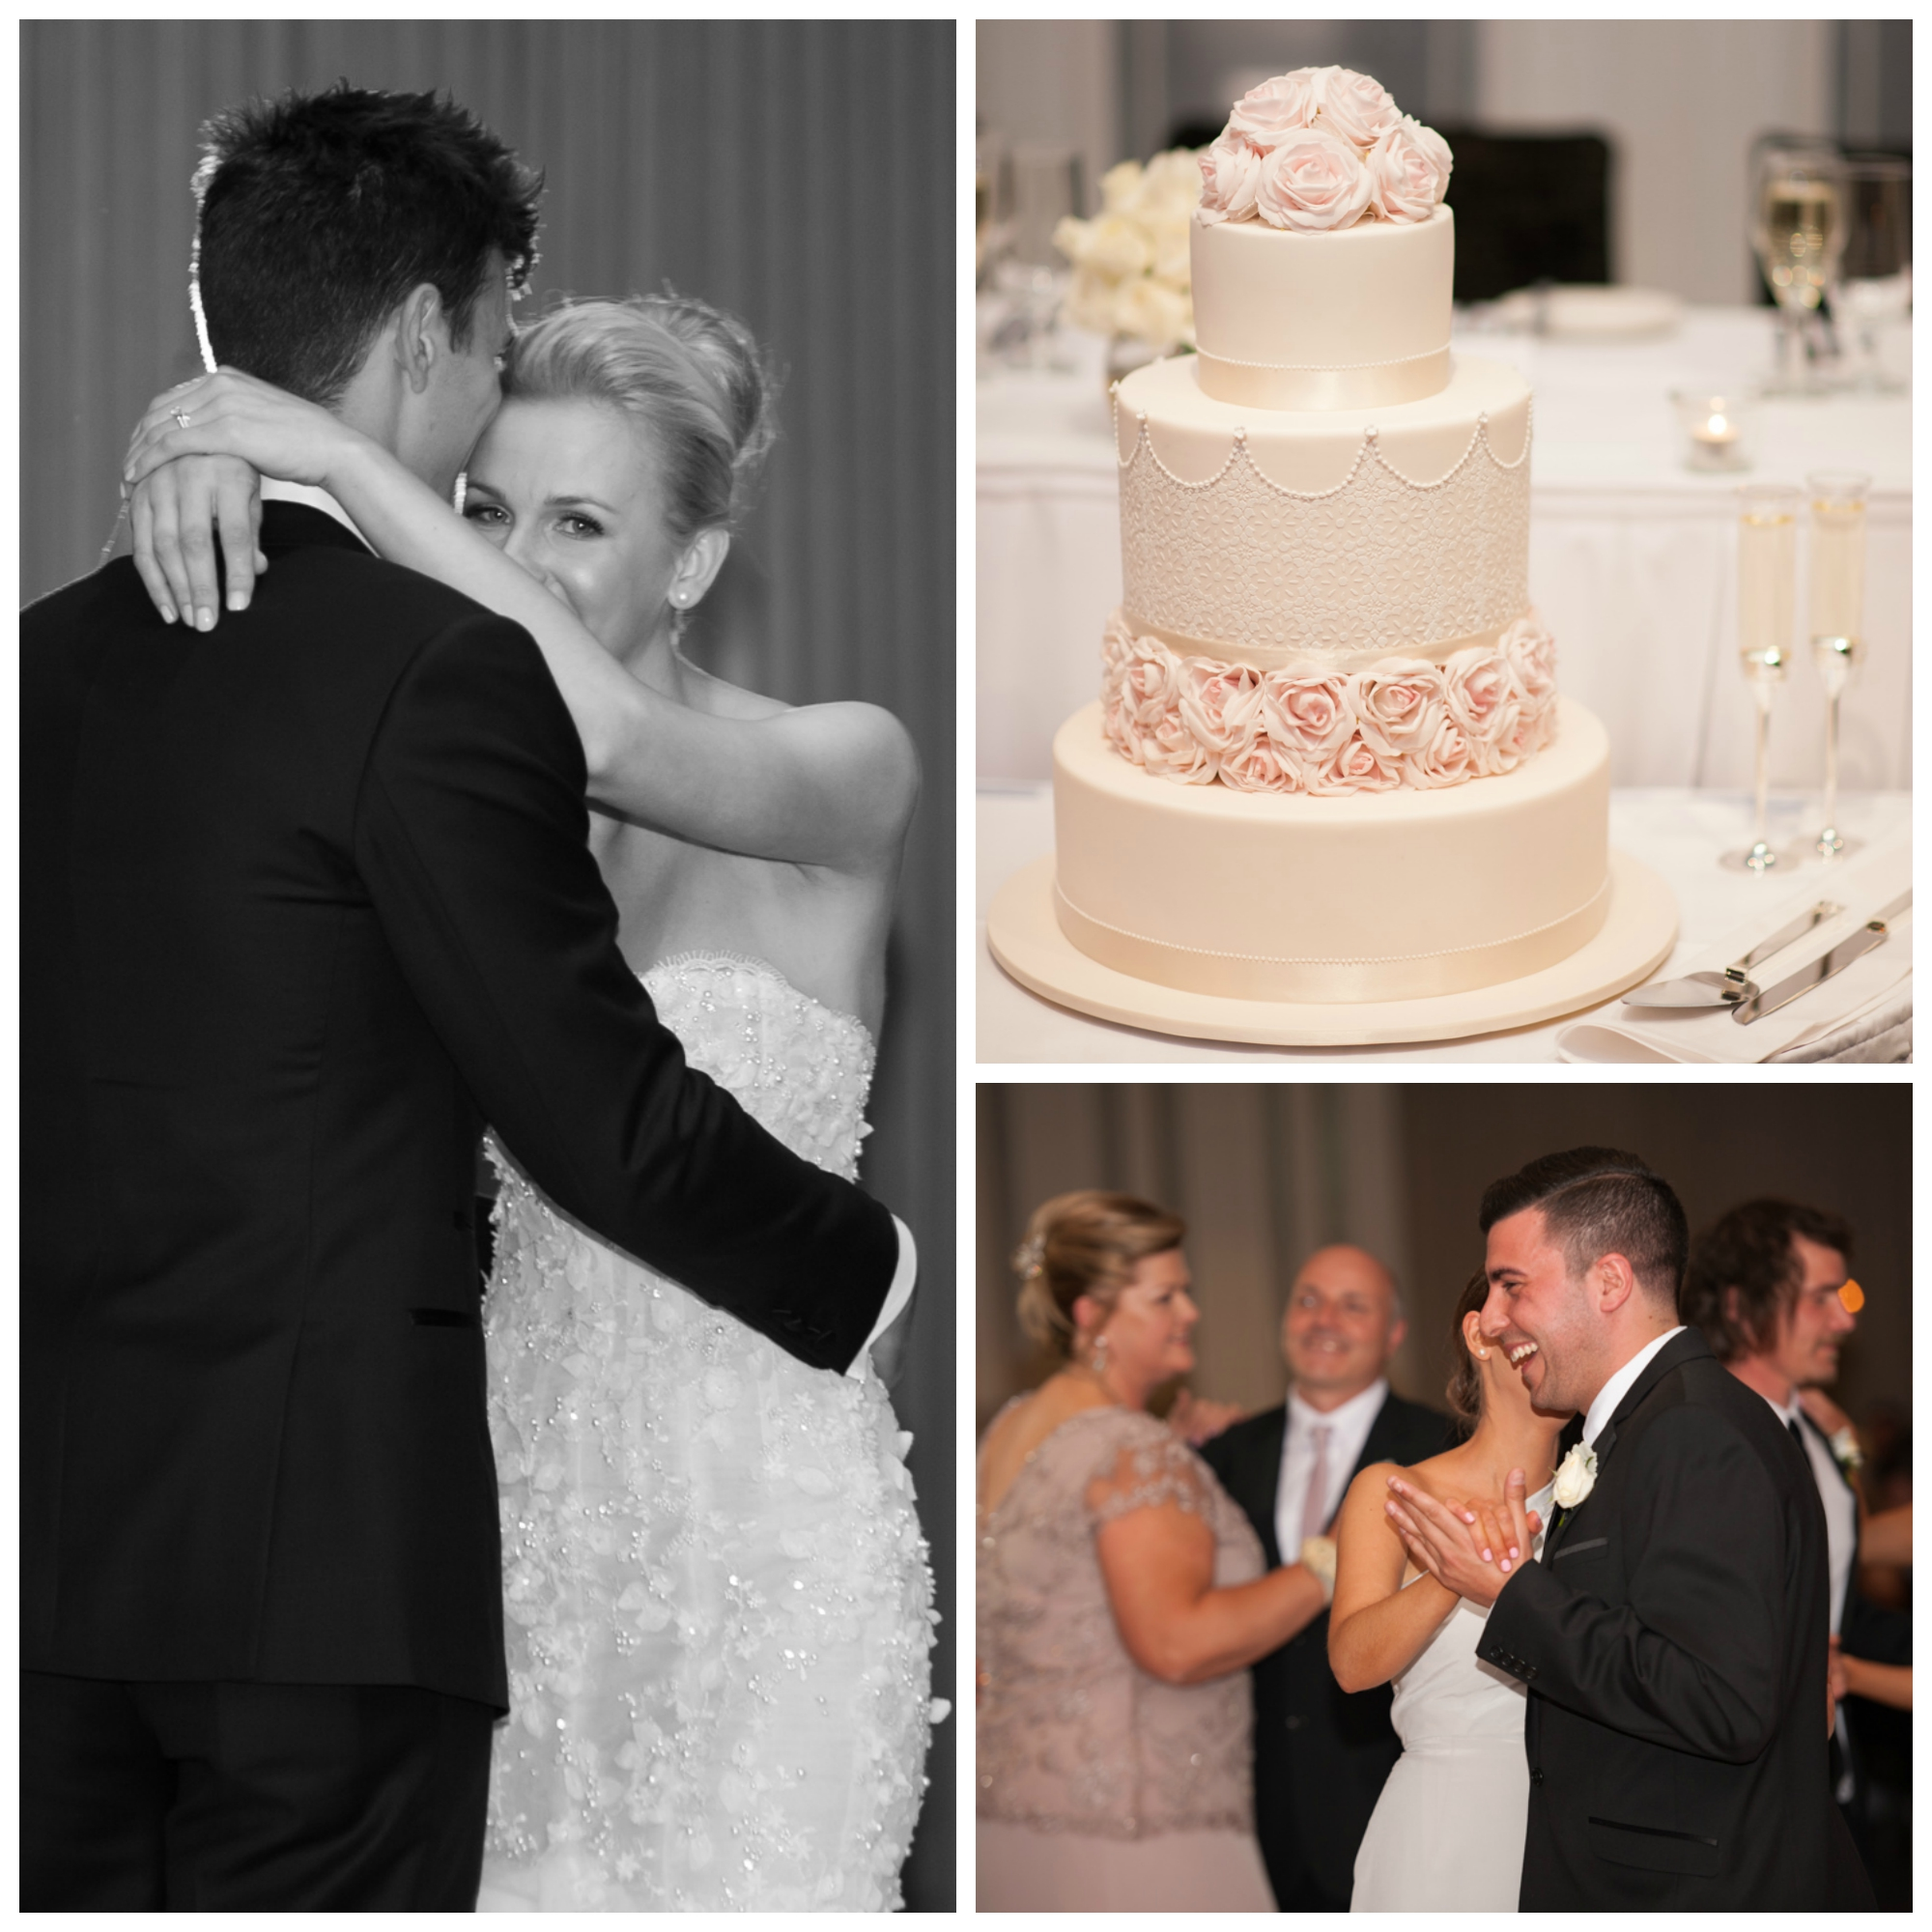 first dance, wedding cake, brighton international, wedding reception, mornington peninsula wedding photographer